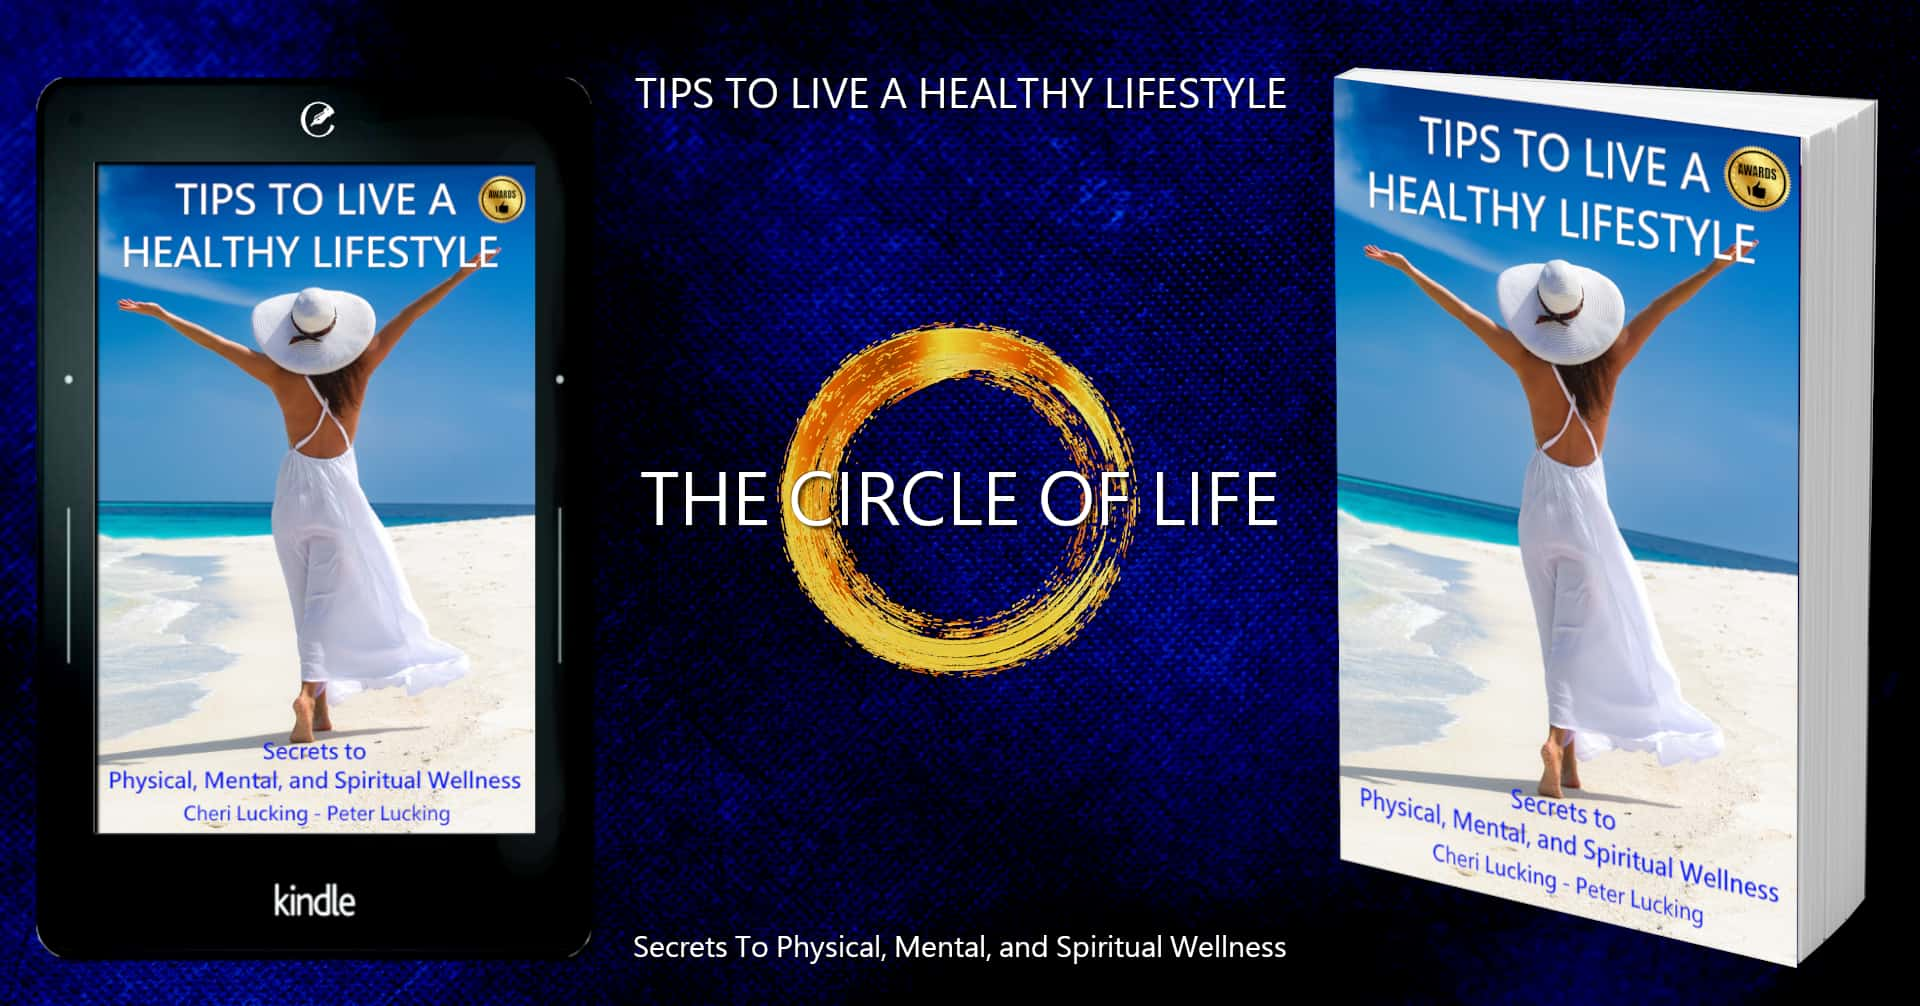 Tips To Live A Healthy Lifestyle, Copywriting, Editorial Services, Content styling, Book Cover Design, Graphics and infographics by Content Branding Solutions, Cheri Lucking, Peter Lucking